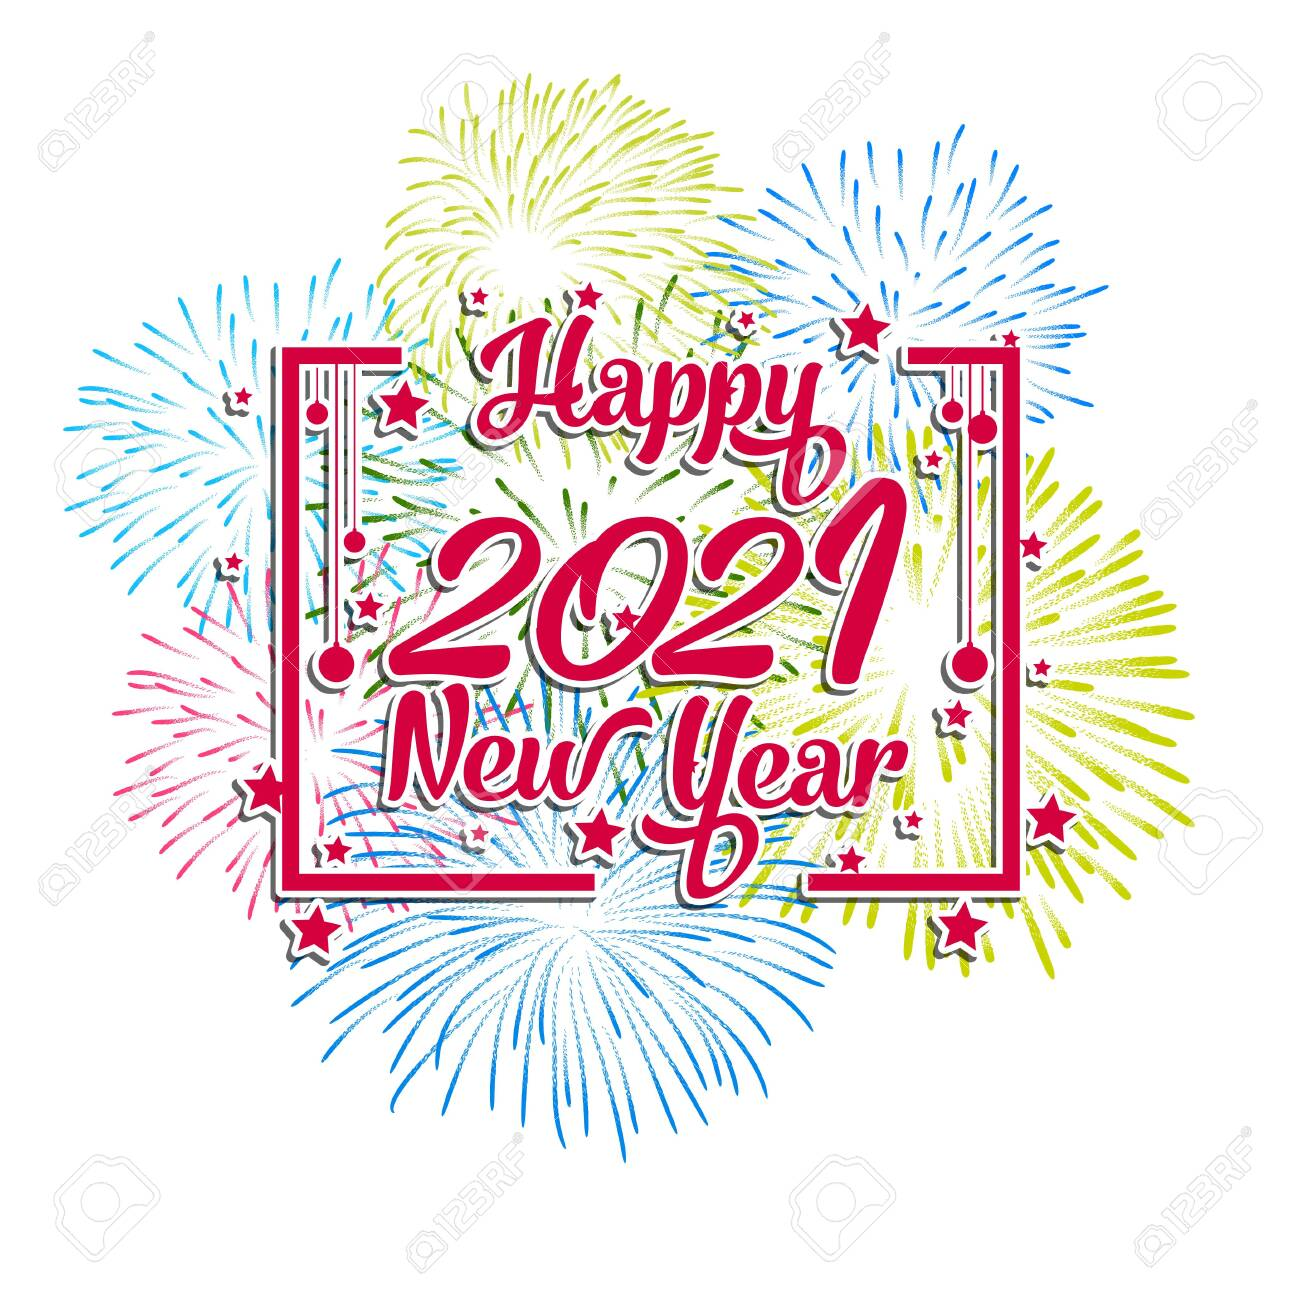 happy new year 2021 with firework background firework display royalty free cliparts vectors and stock illustration image 136892288 happy new year 2021 with firework background firework display